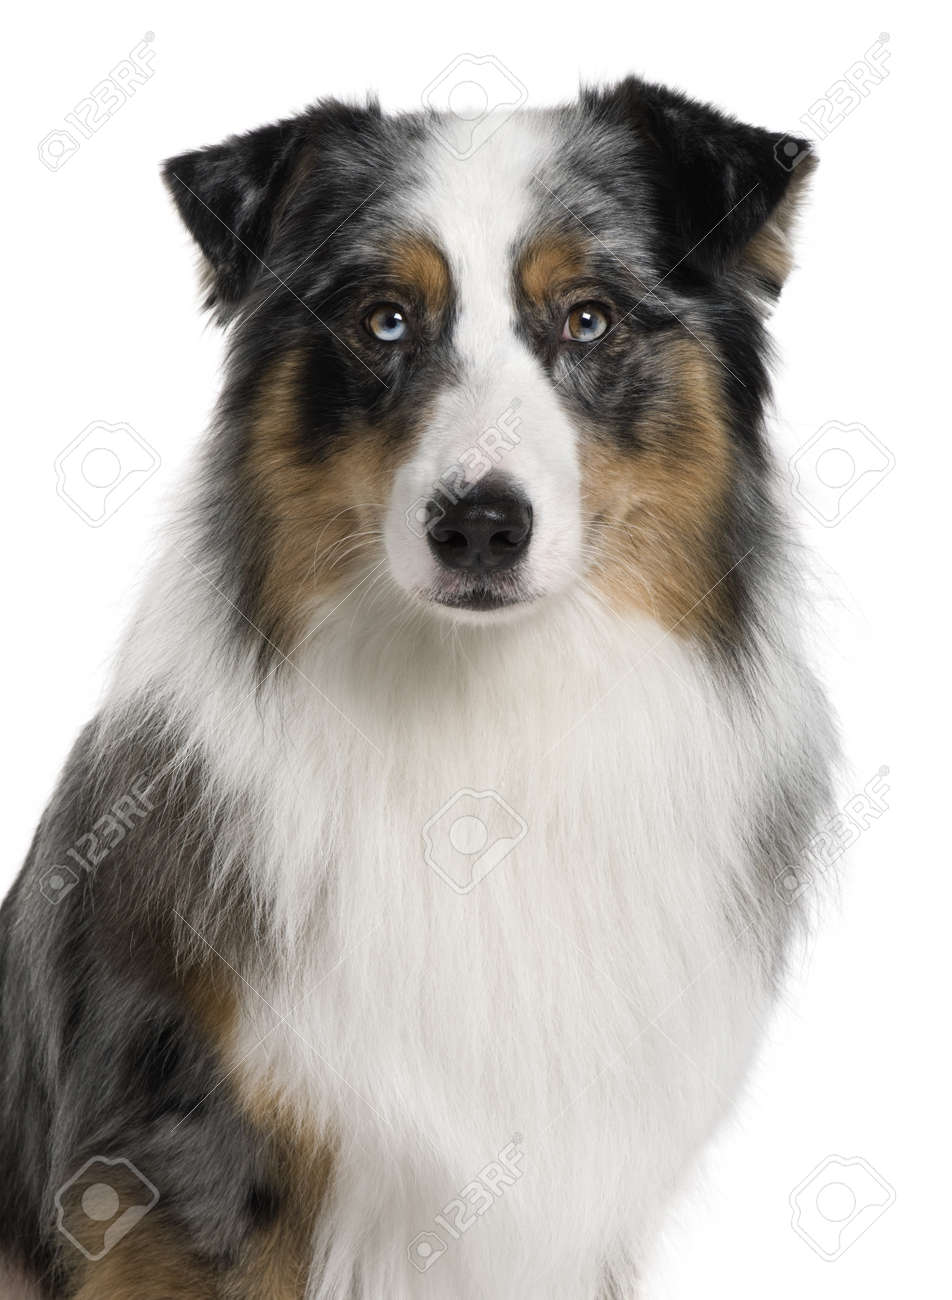 Australian Shepherd dog, 3 years old, in front of white background Stock Photo - 7121668